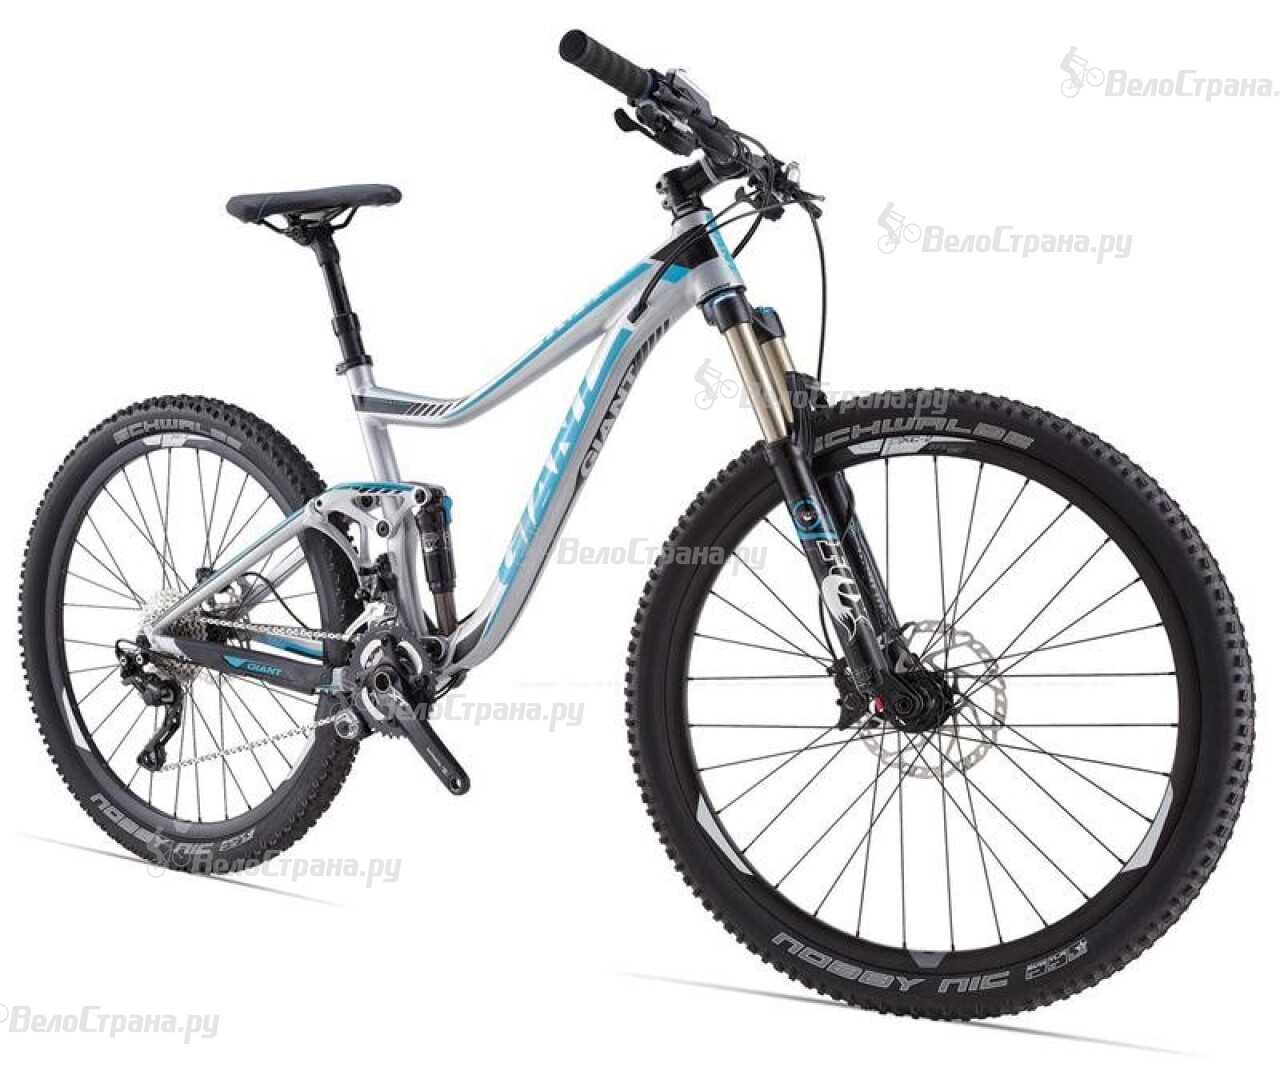 Велосипед Giant Trance 27.5 1 (2014) giant trance x 29er 1 2014 silver